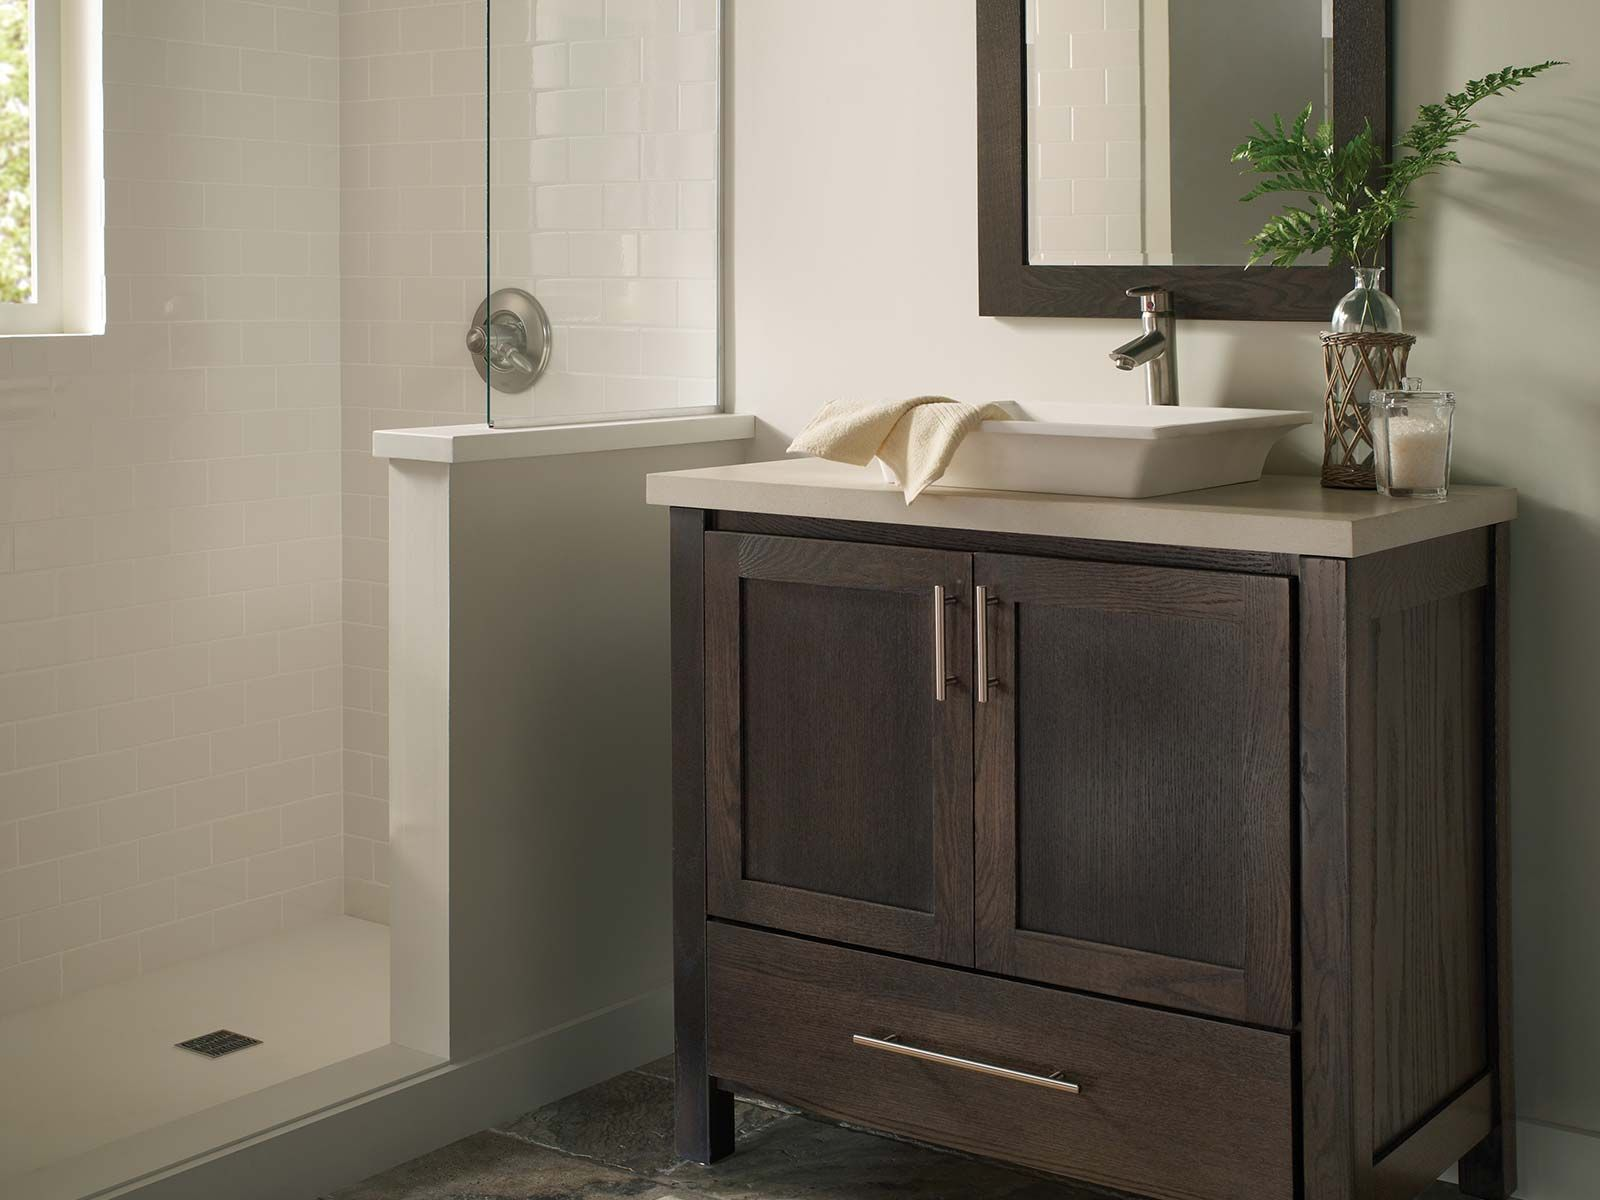 Re Bath Omaha Uses Custom Cabinets From Bertch In Their Remodels